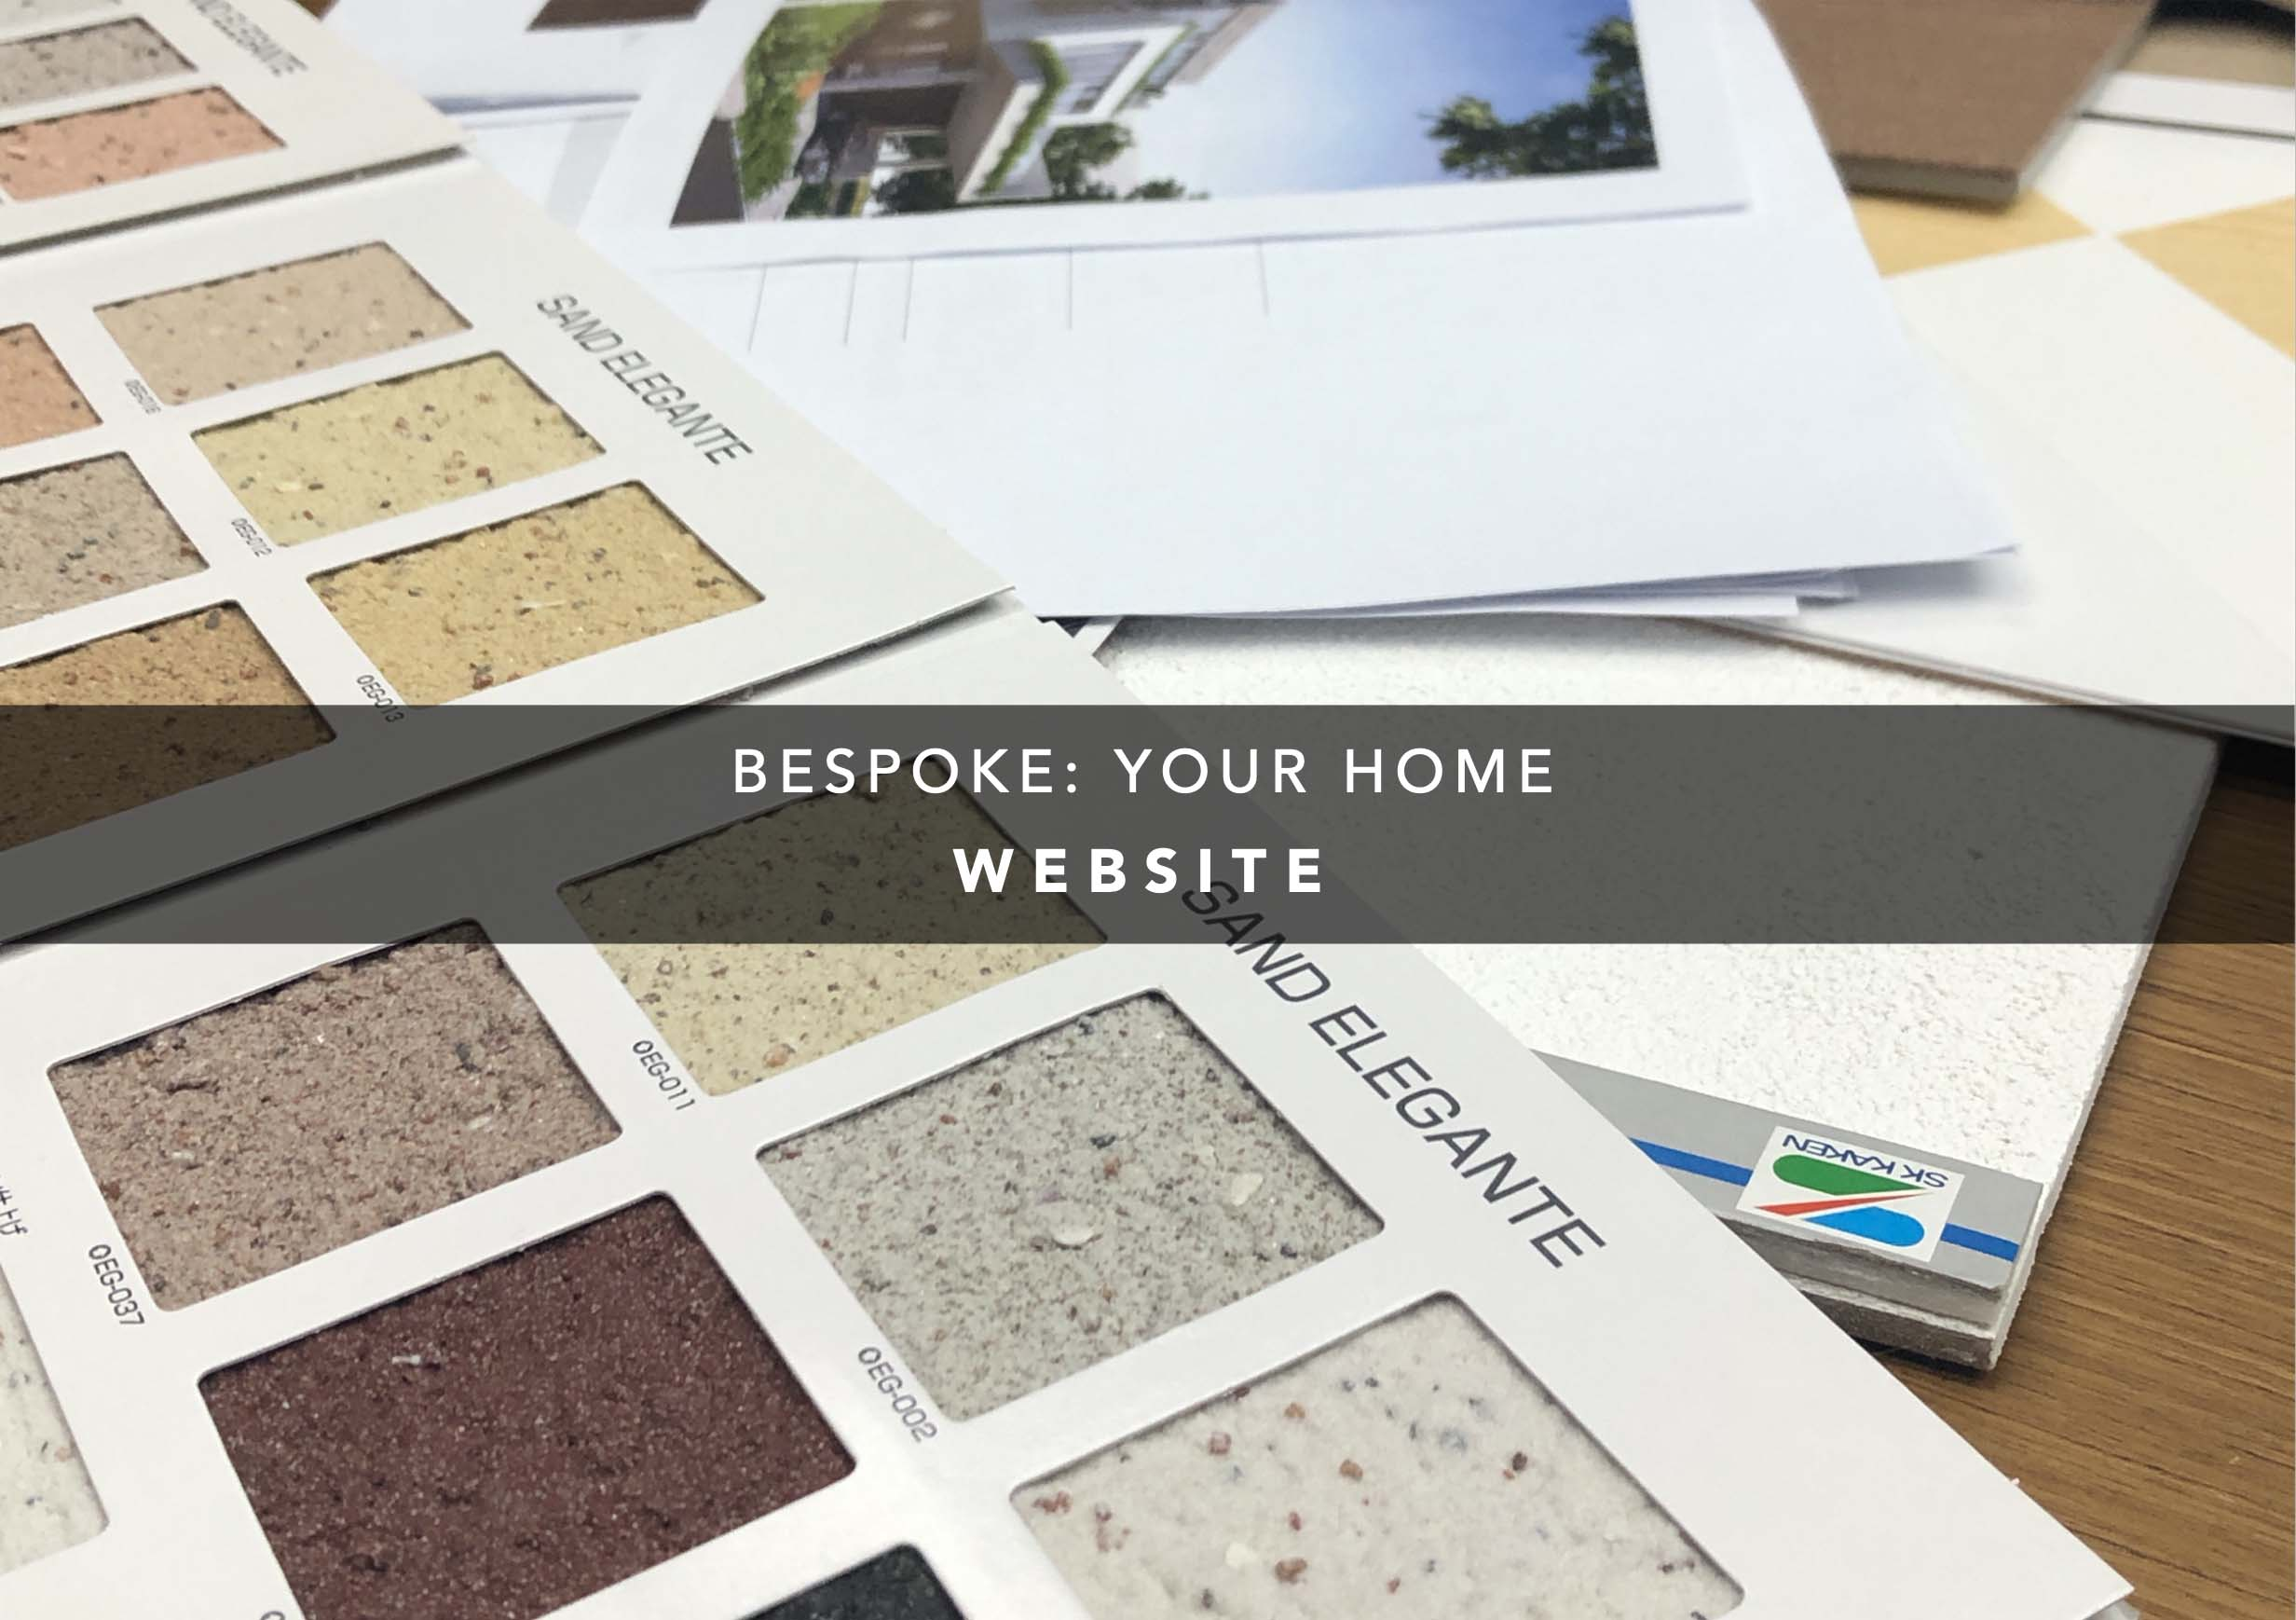 Bespoke: Your Home